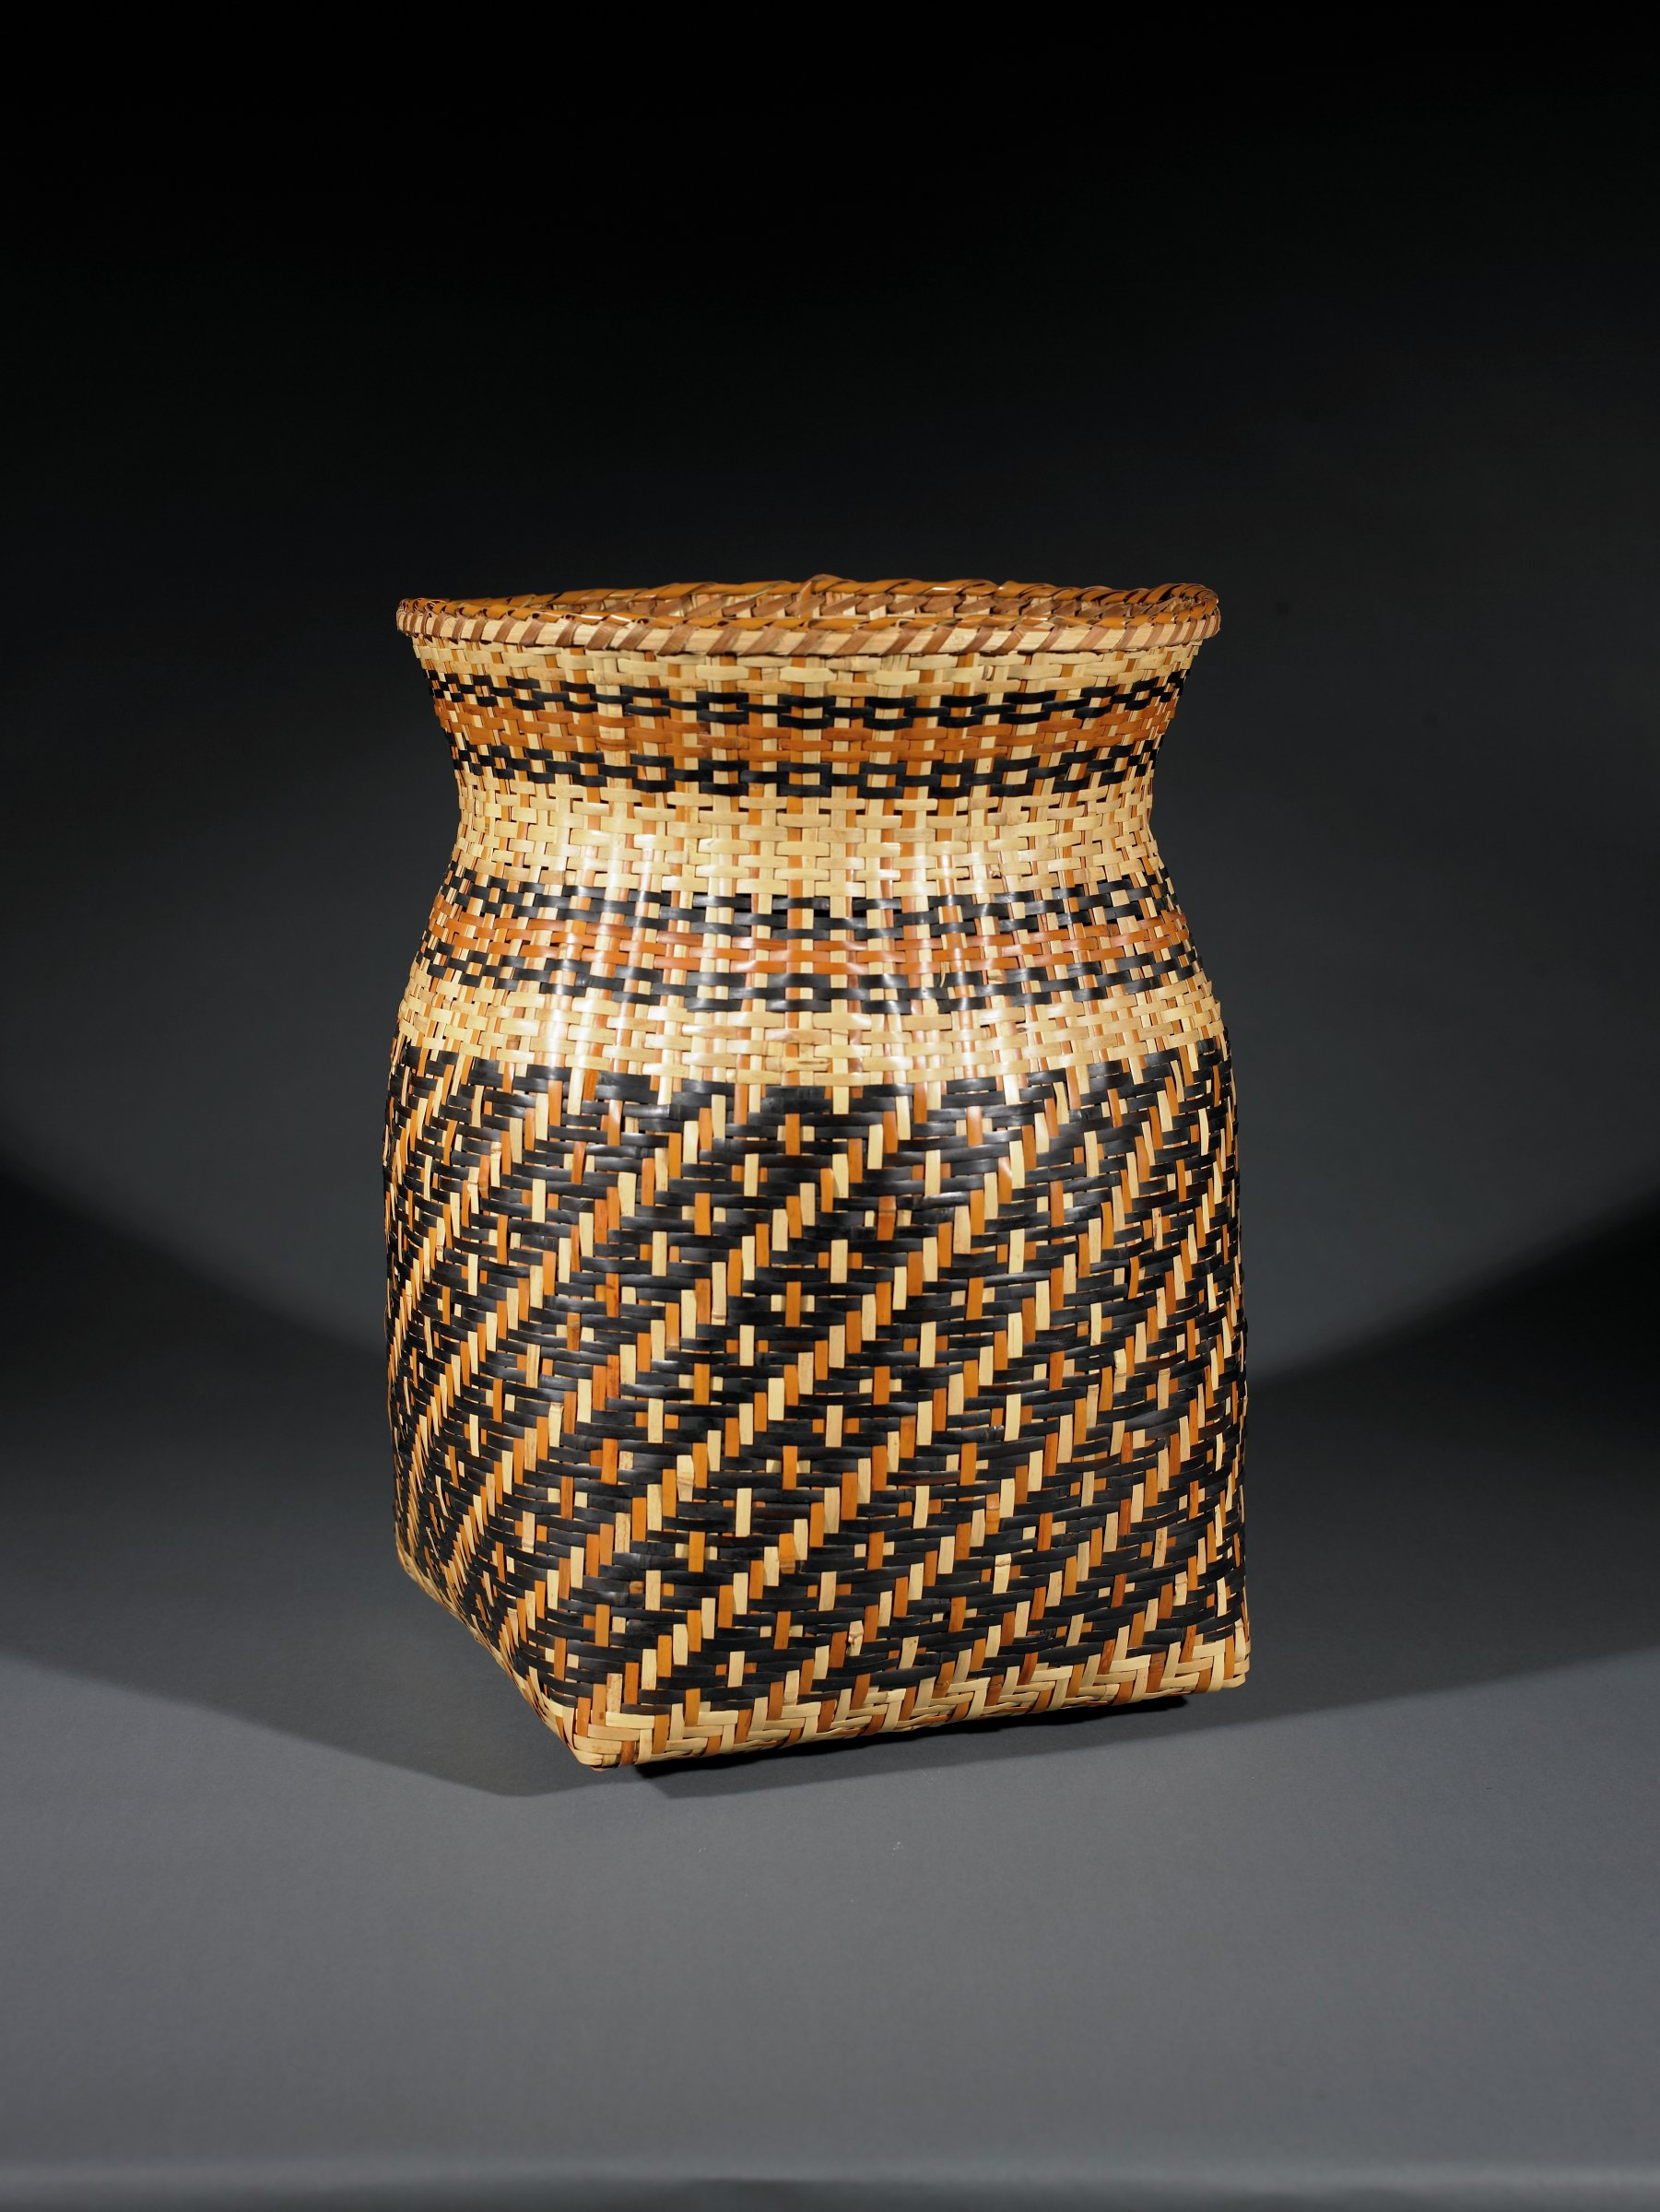 Single-weave river cane storage basket with square bottom and round body, neck, and mouth. Body of basket has dark diagonal bands; neck and shoulder of basket have bands of dark brown and red.